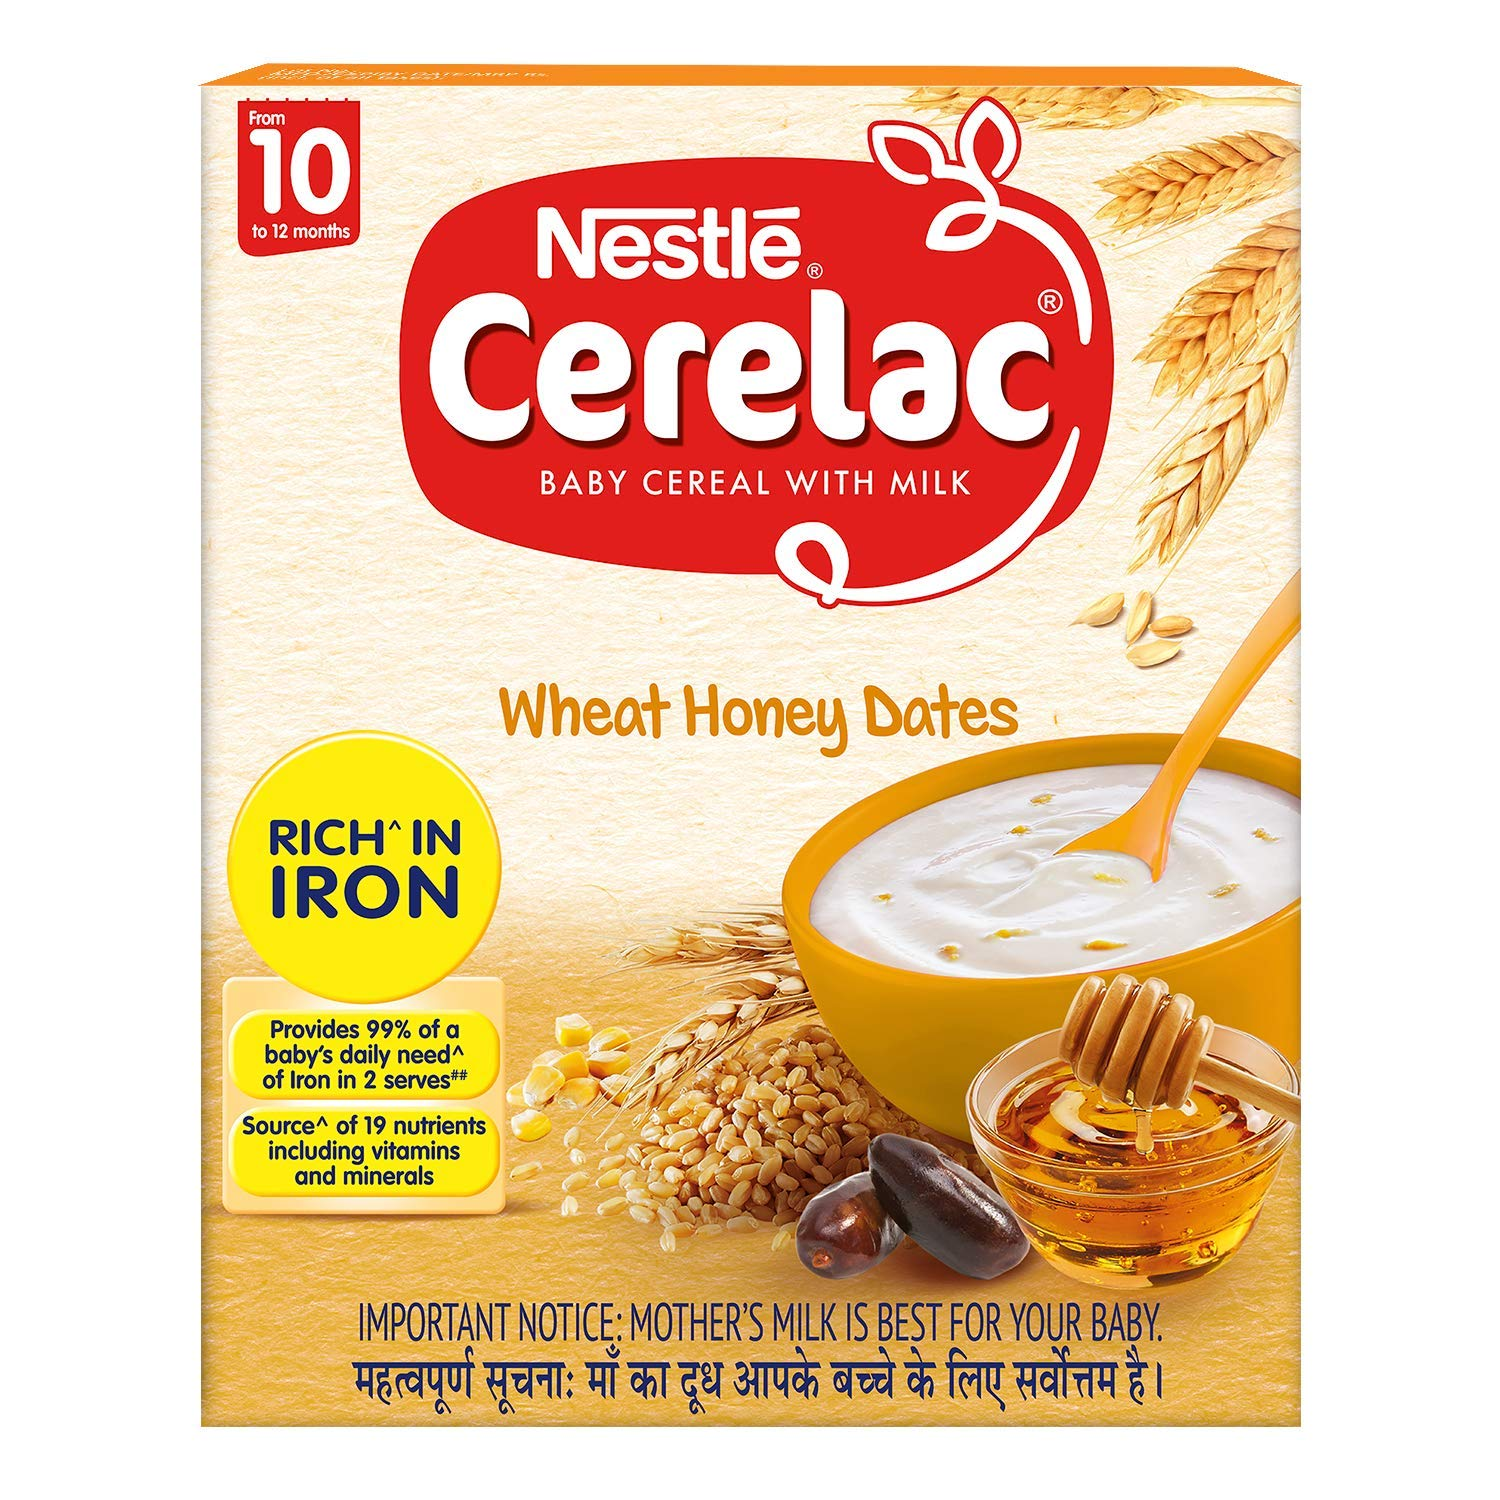 Nestle Cerelac Fortified Baby Cereal with Milk 10 Months+ Wheat Honey Dates